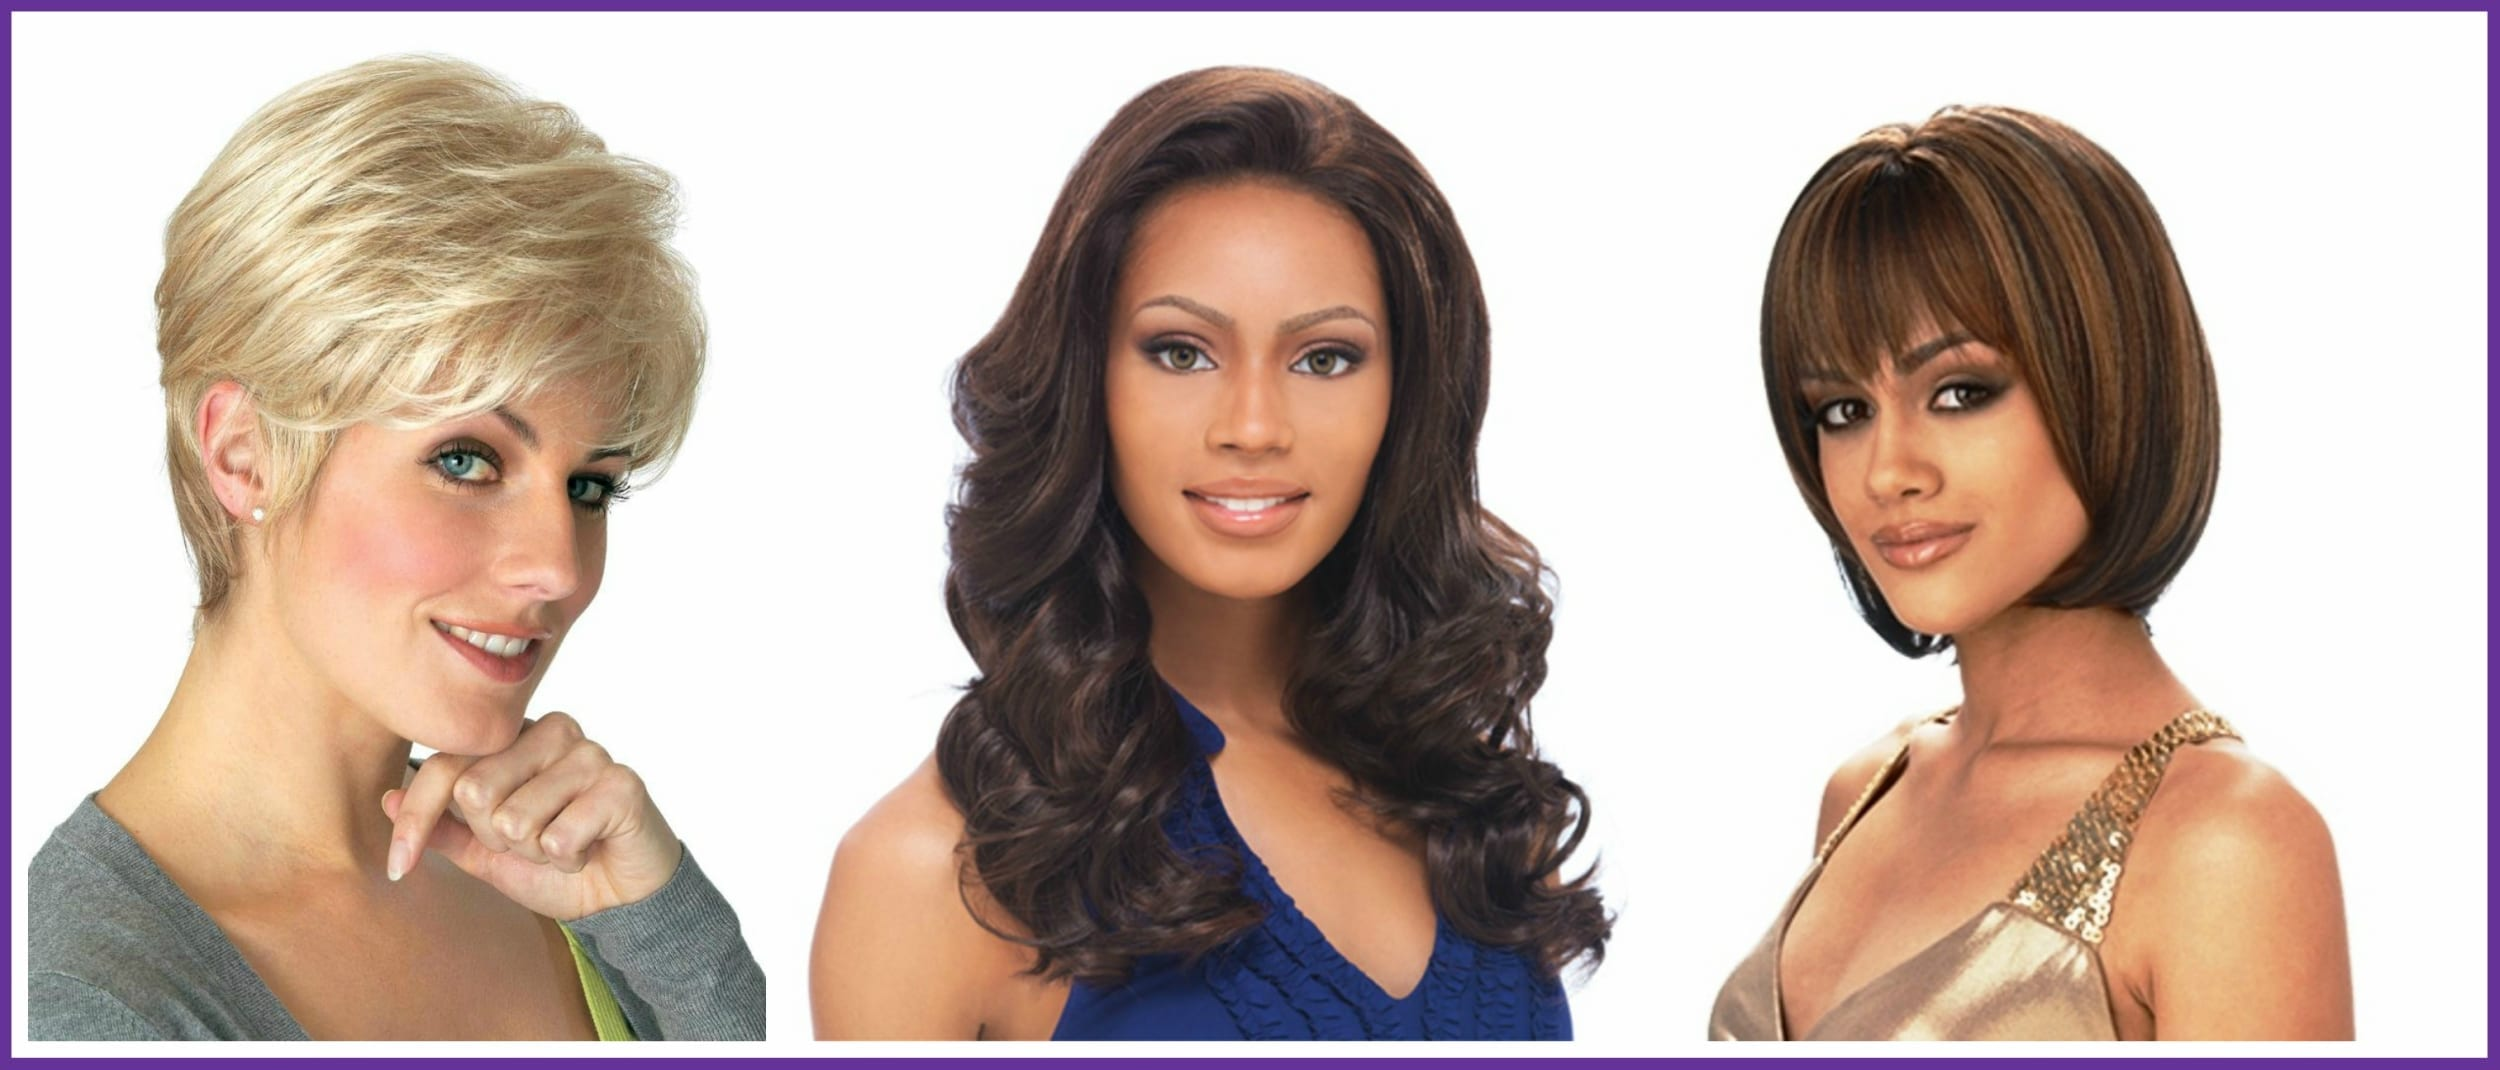 where to buy wigs in Fort Collins Colorado, chemo party, arda, westbay, Synthetic and human hair,